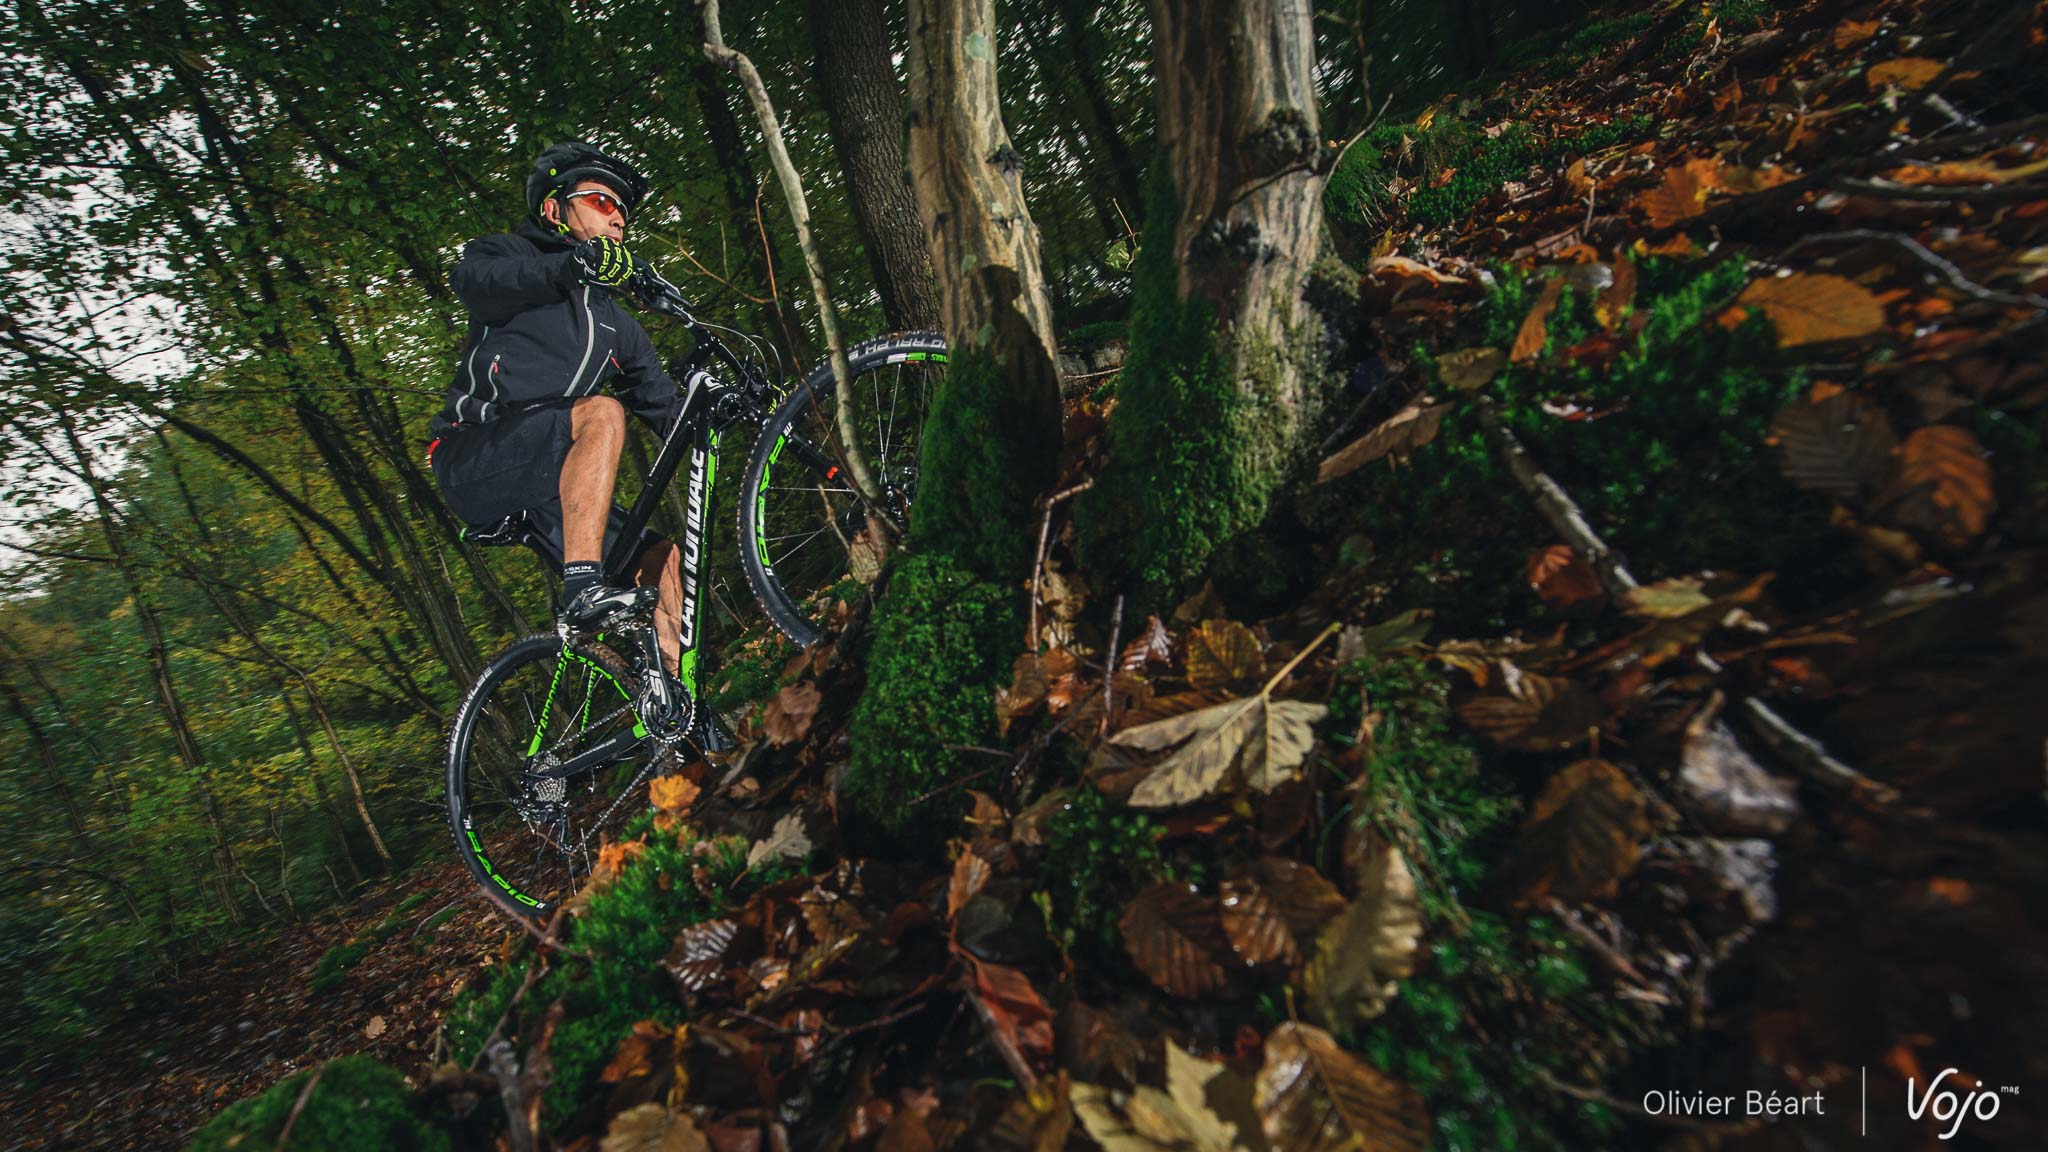 Cannondale_F-Si_Carbon_4_Test_Action_Copyright_OBeart_VojoMag-5b